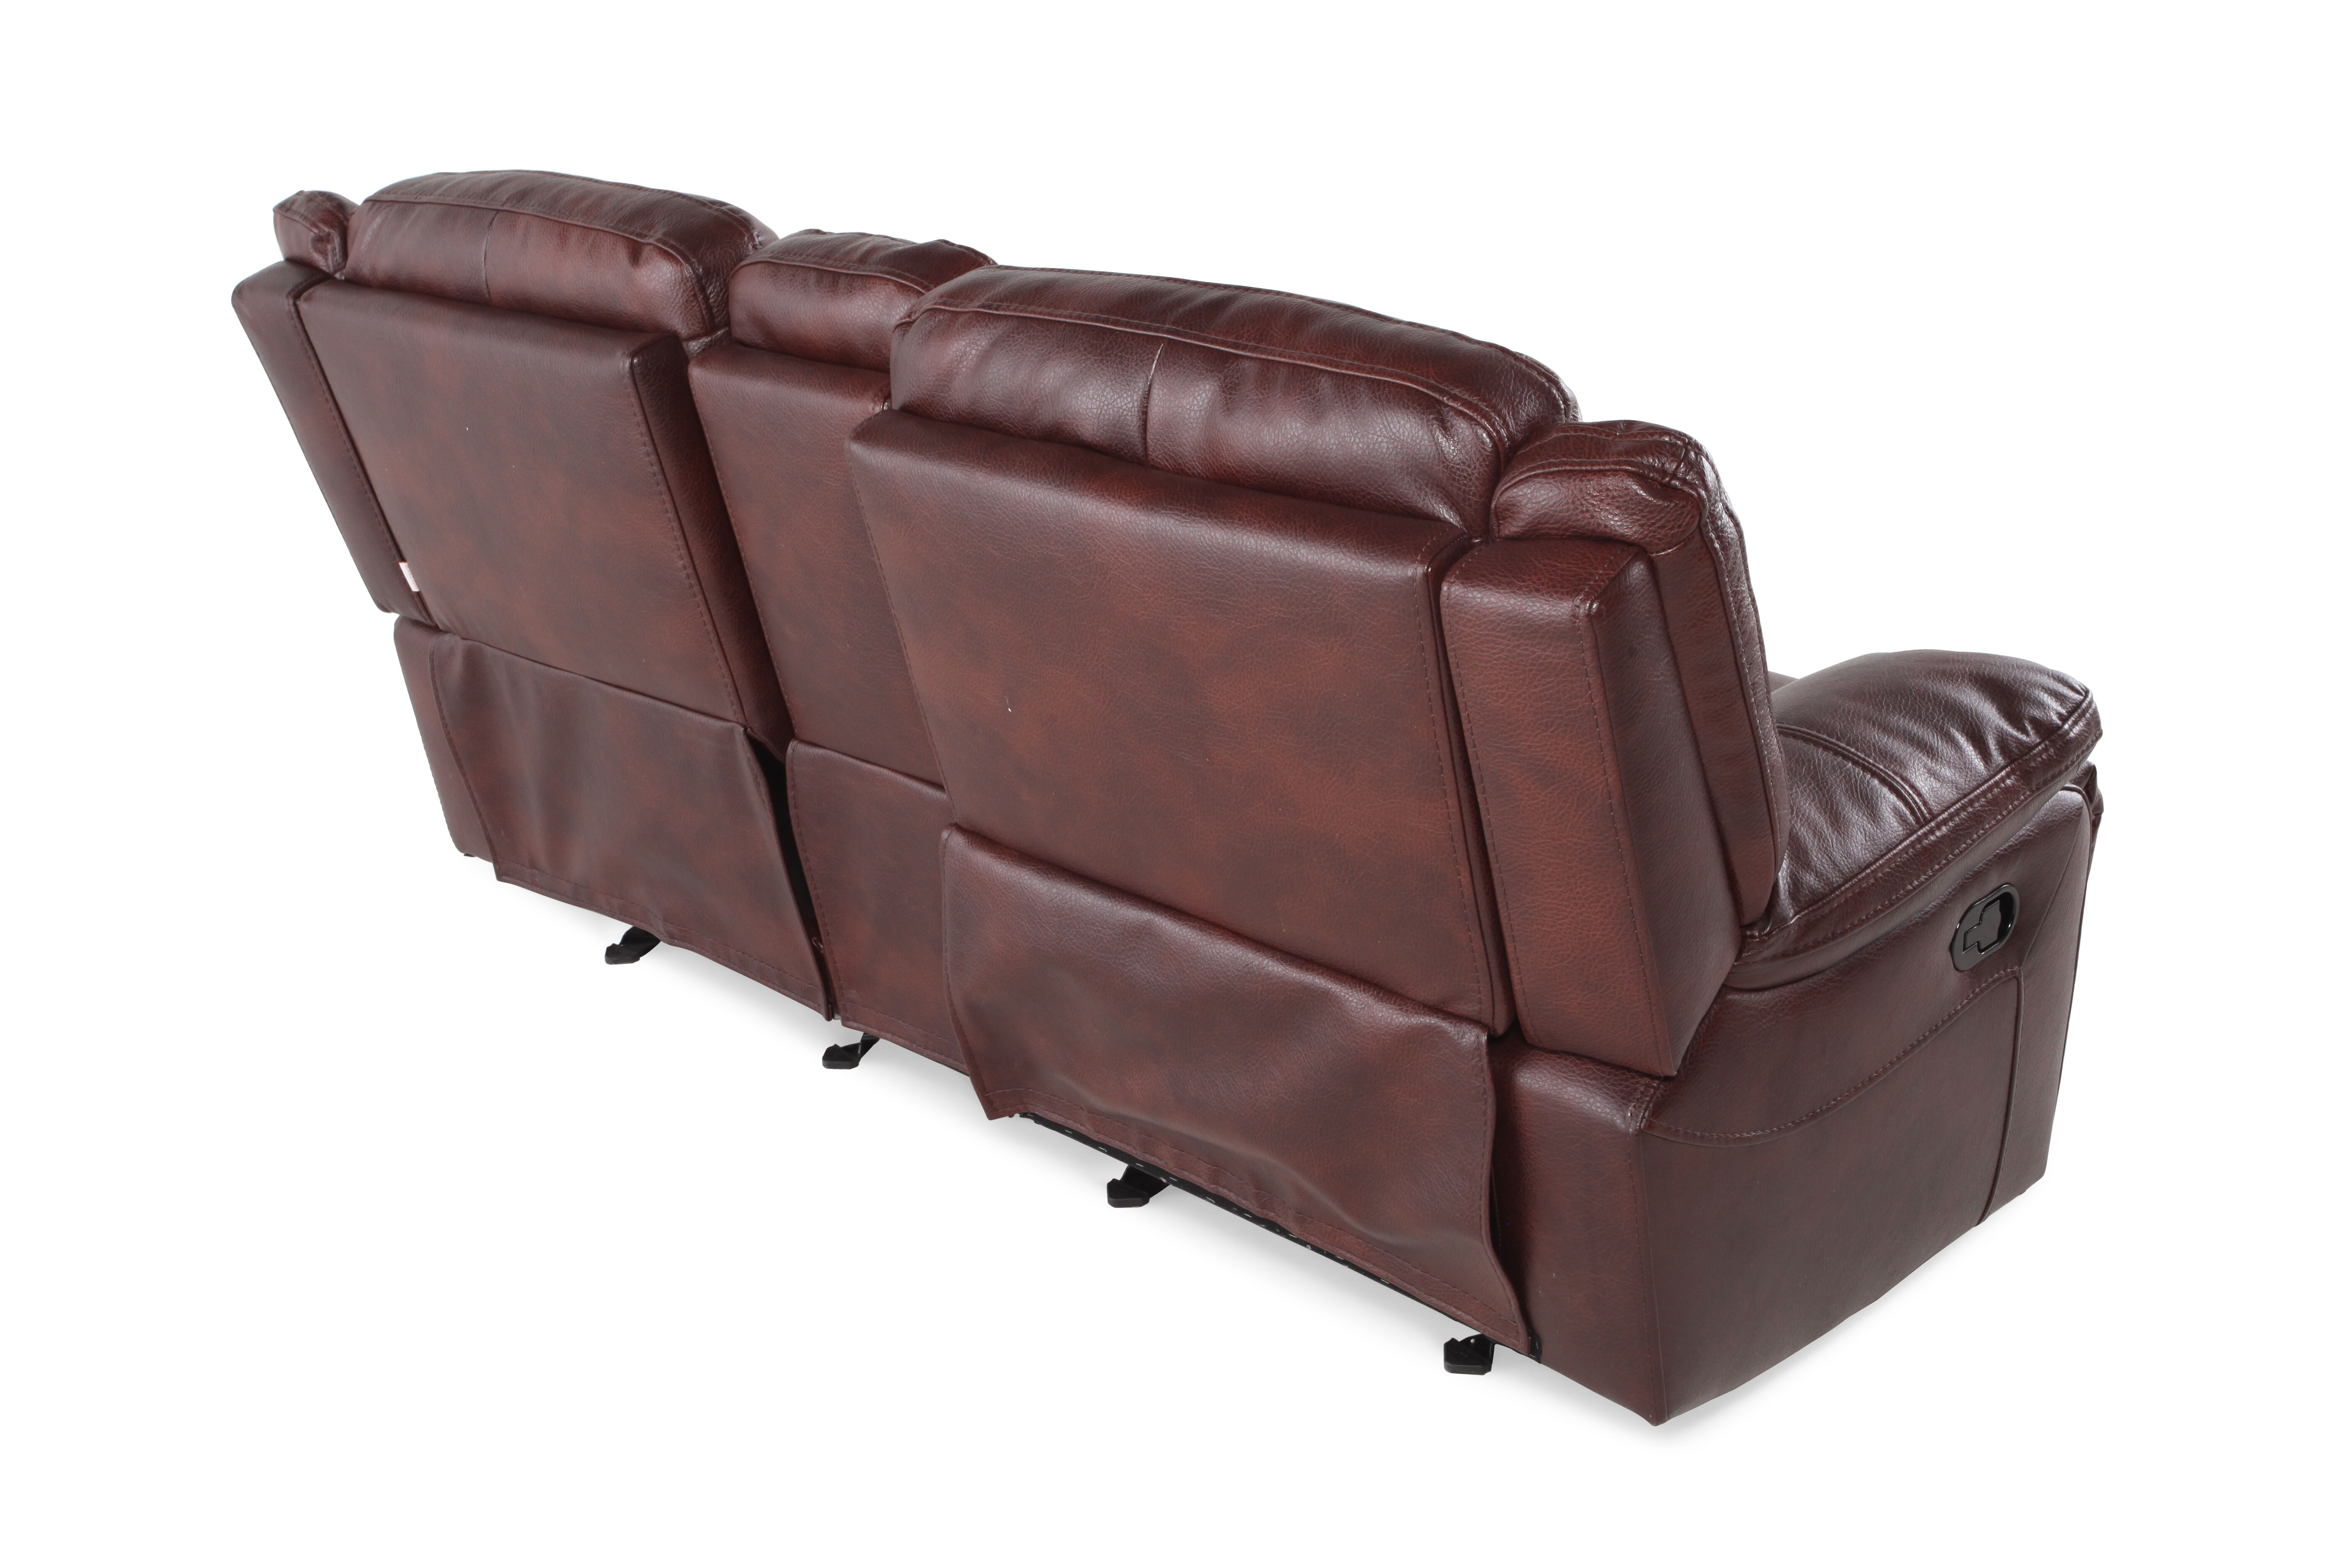 Boulevard Glider Reclining Loveseat with Console  sc 1 st  Mathis Brothers & Boulevard Glider Reclining Loveseat with Console | Mathis Brothers ... islam-shia.org